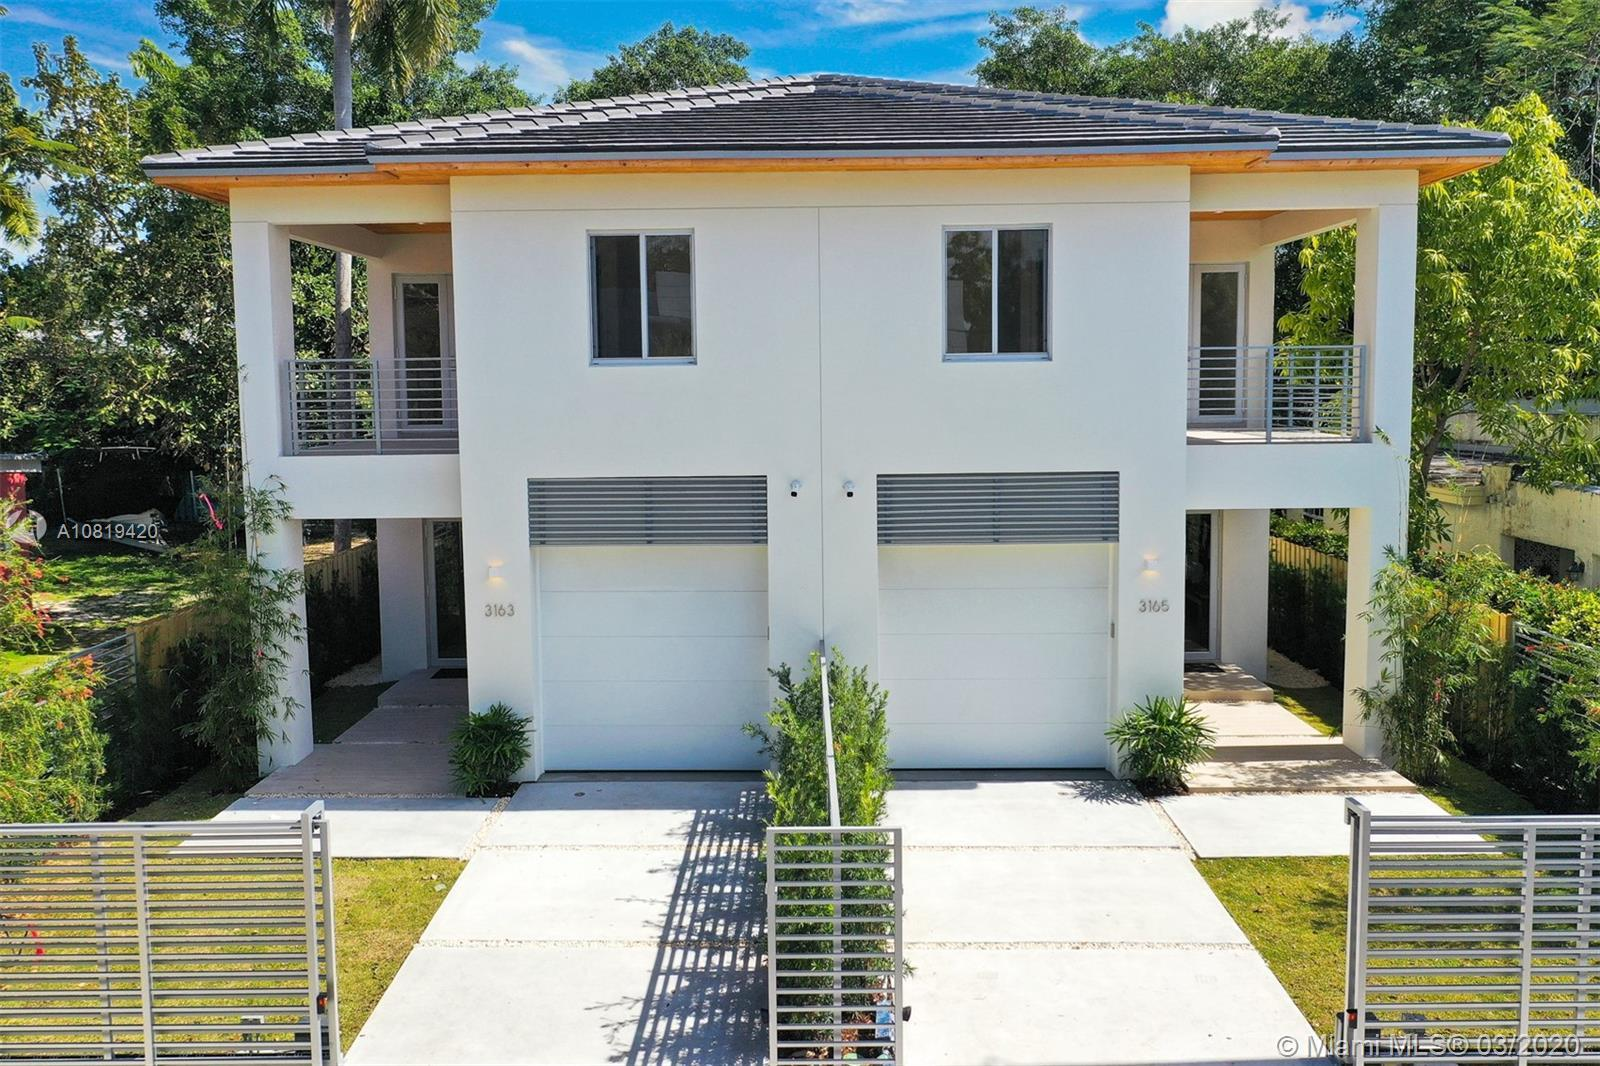 Brand New Construction 2020 !! Modern townhouse with 4 bedrooms, 4 full bath. Top of the line Bosch